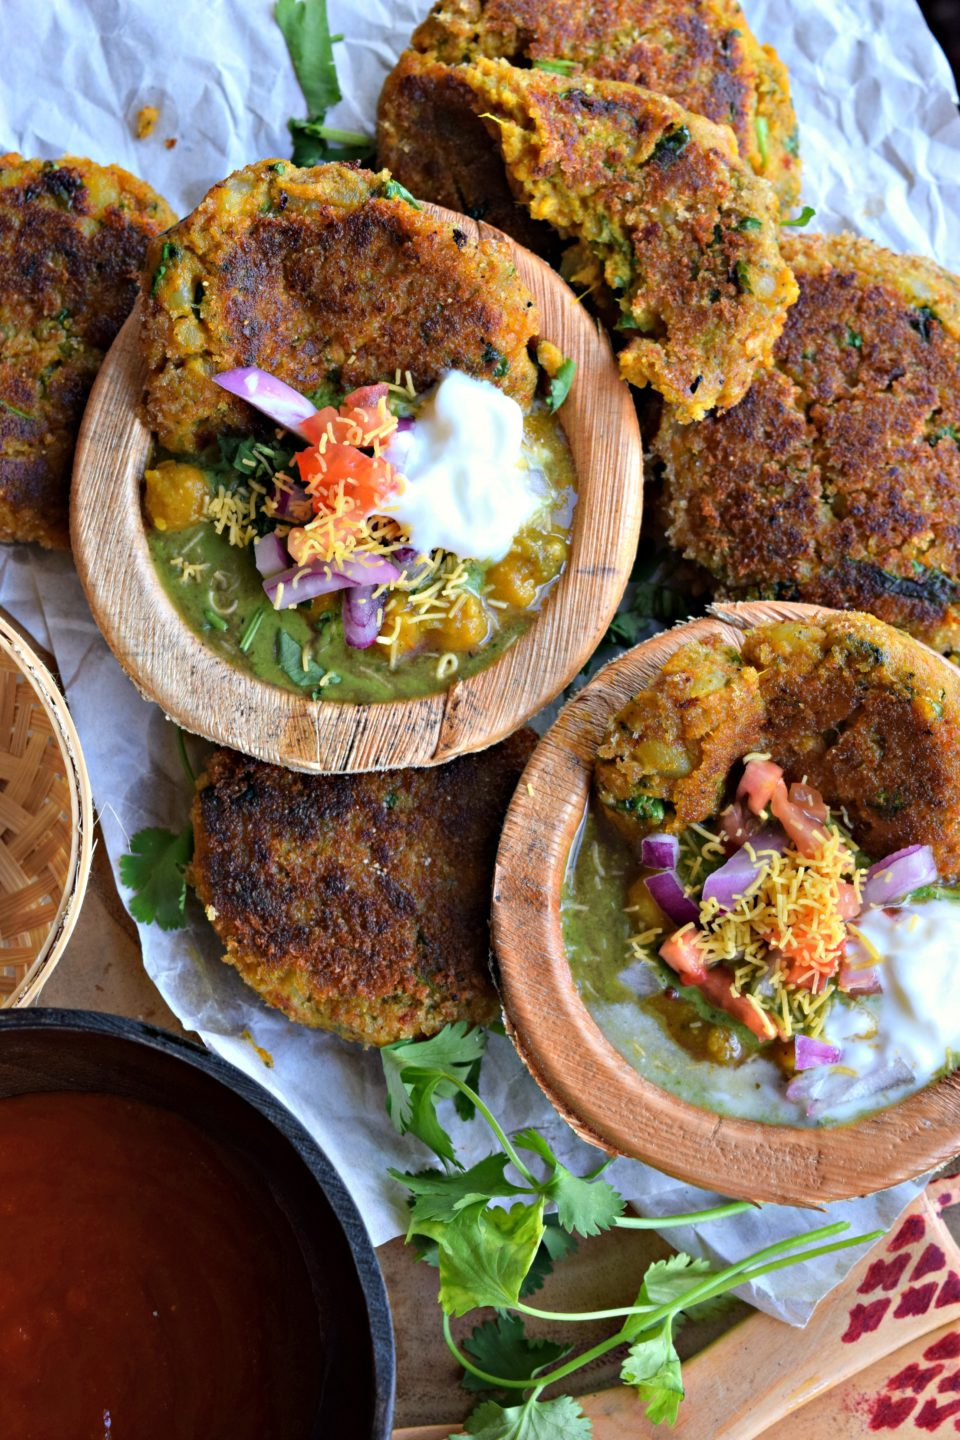 Spicy Sweet Potato Tikki With Chole Chaat is a healthy twist to the traditional Bombay Chaat. Sweet potato fritters are served with chickpea curry & sauces.